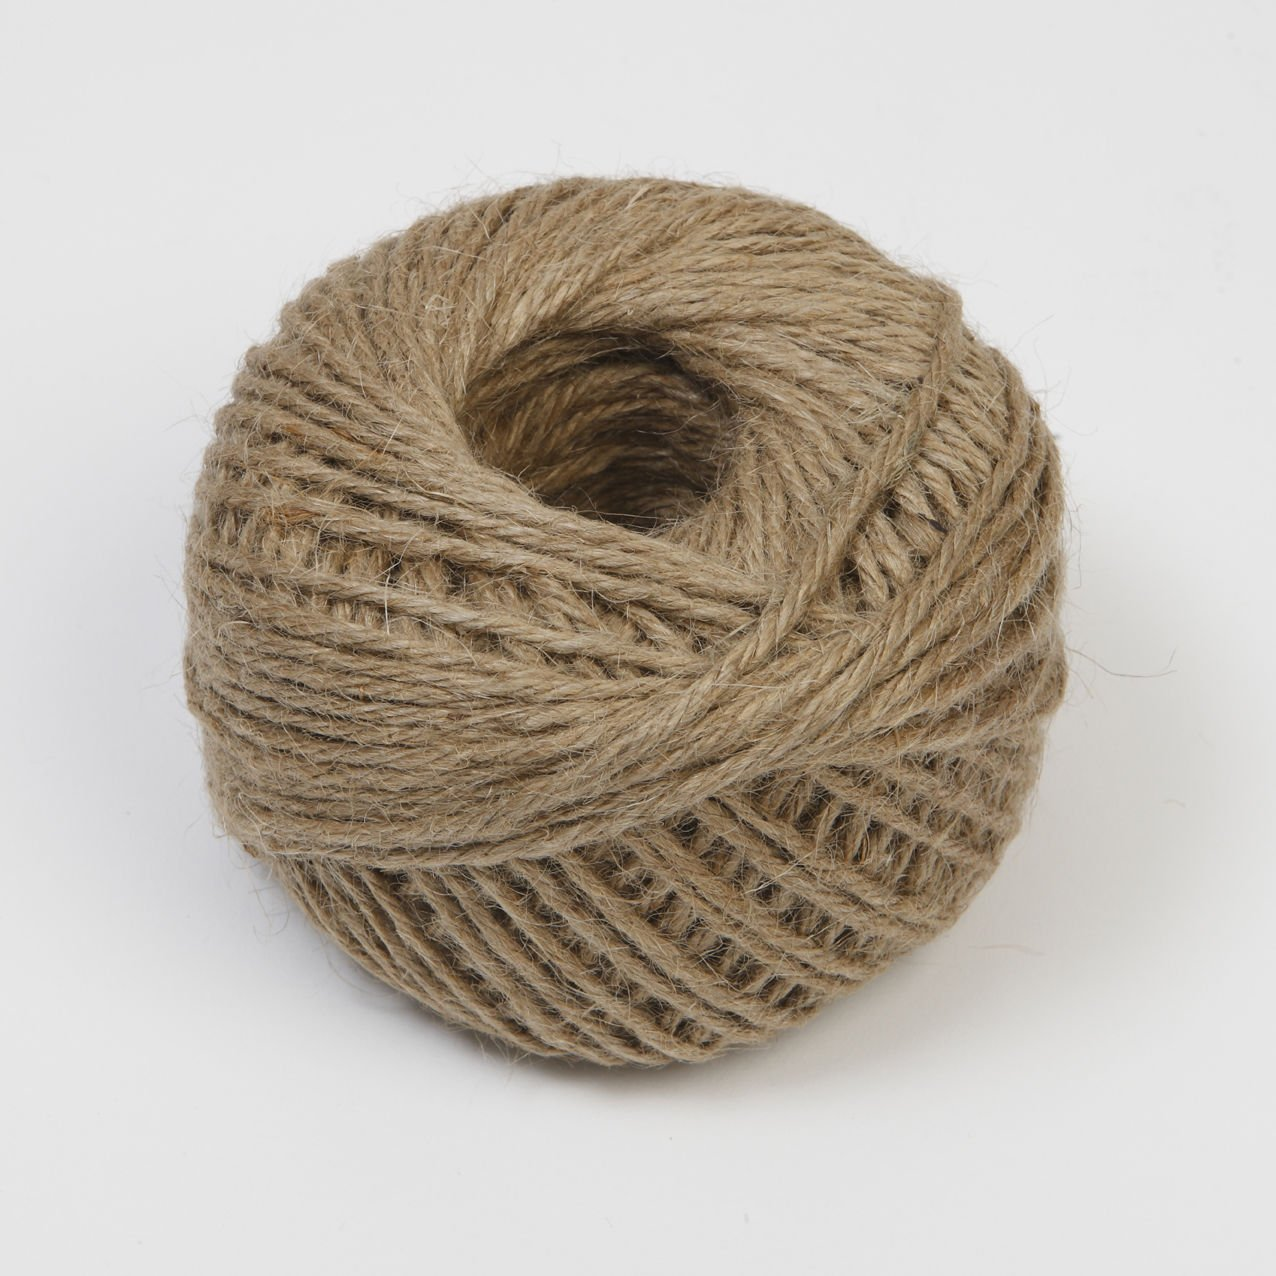 60m of Jute Twine, Natural Hessian Burlap String 3 PLY Macallen